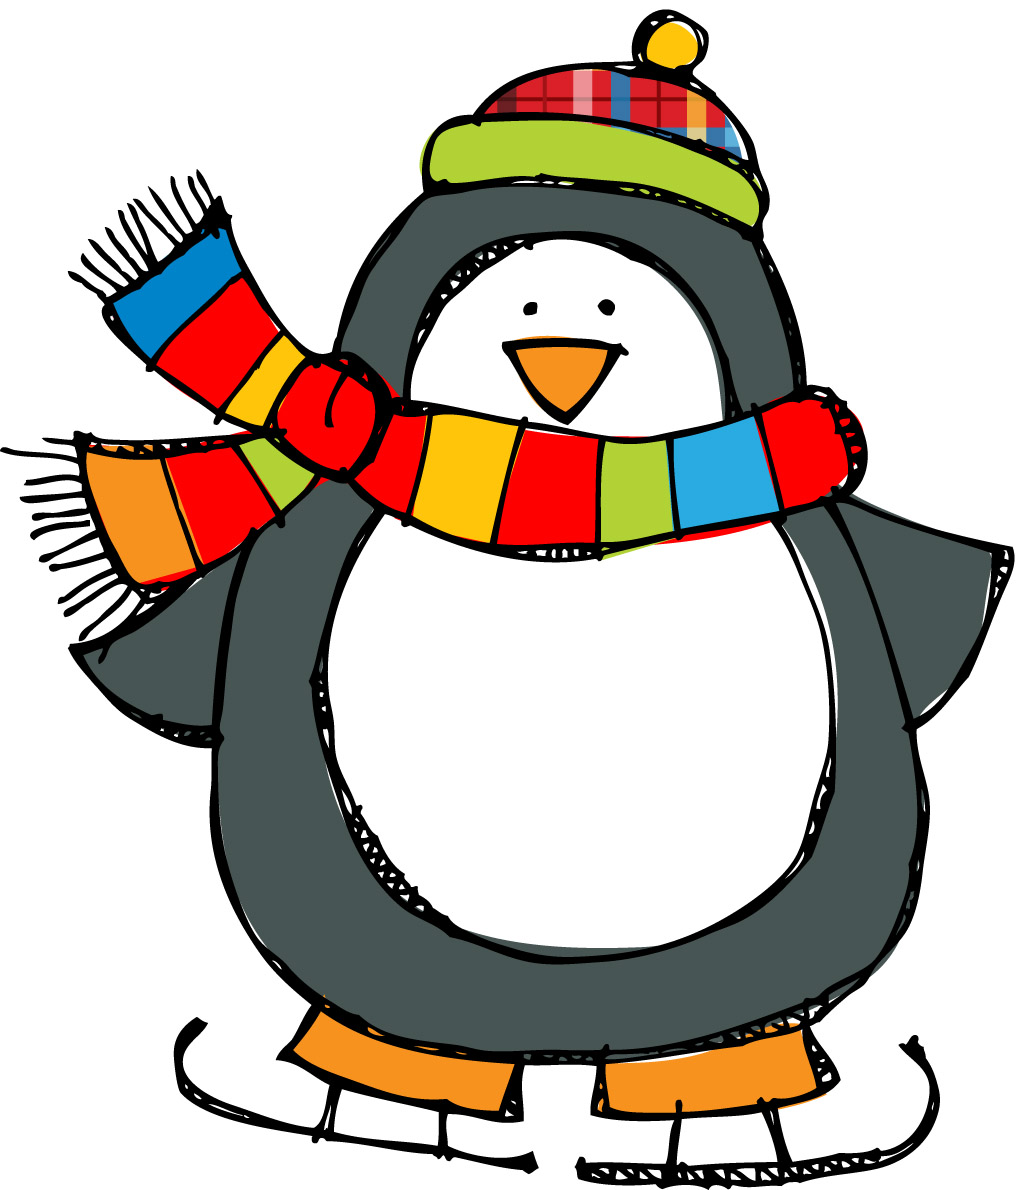 Penguin Sliding Clip Art | Clipart library - Free Clipart Images